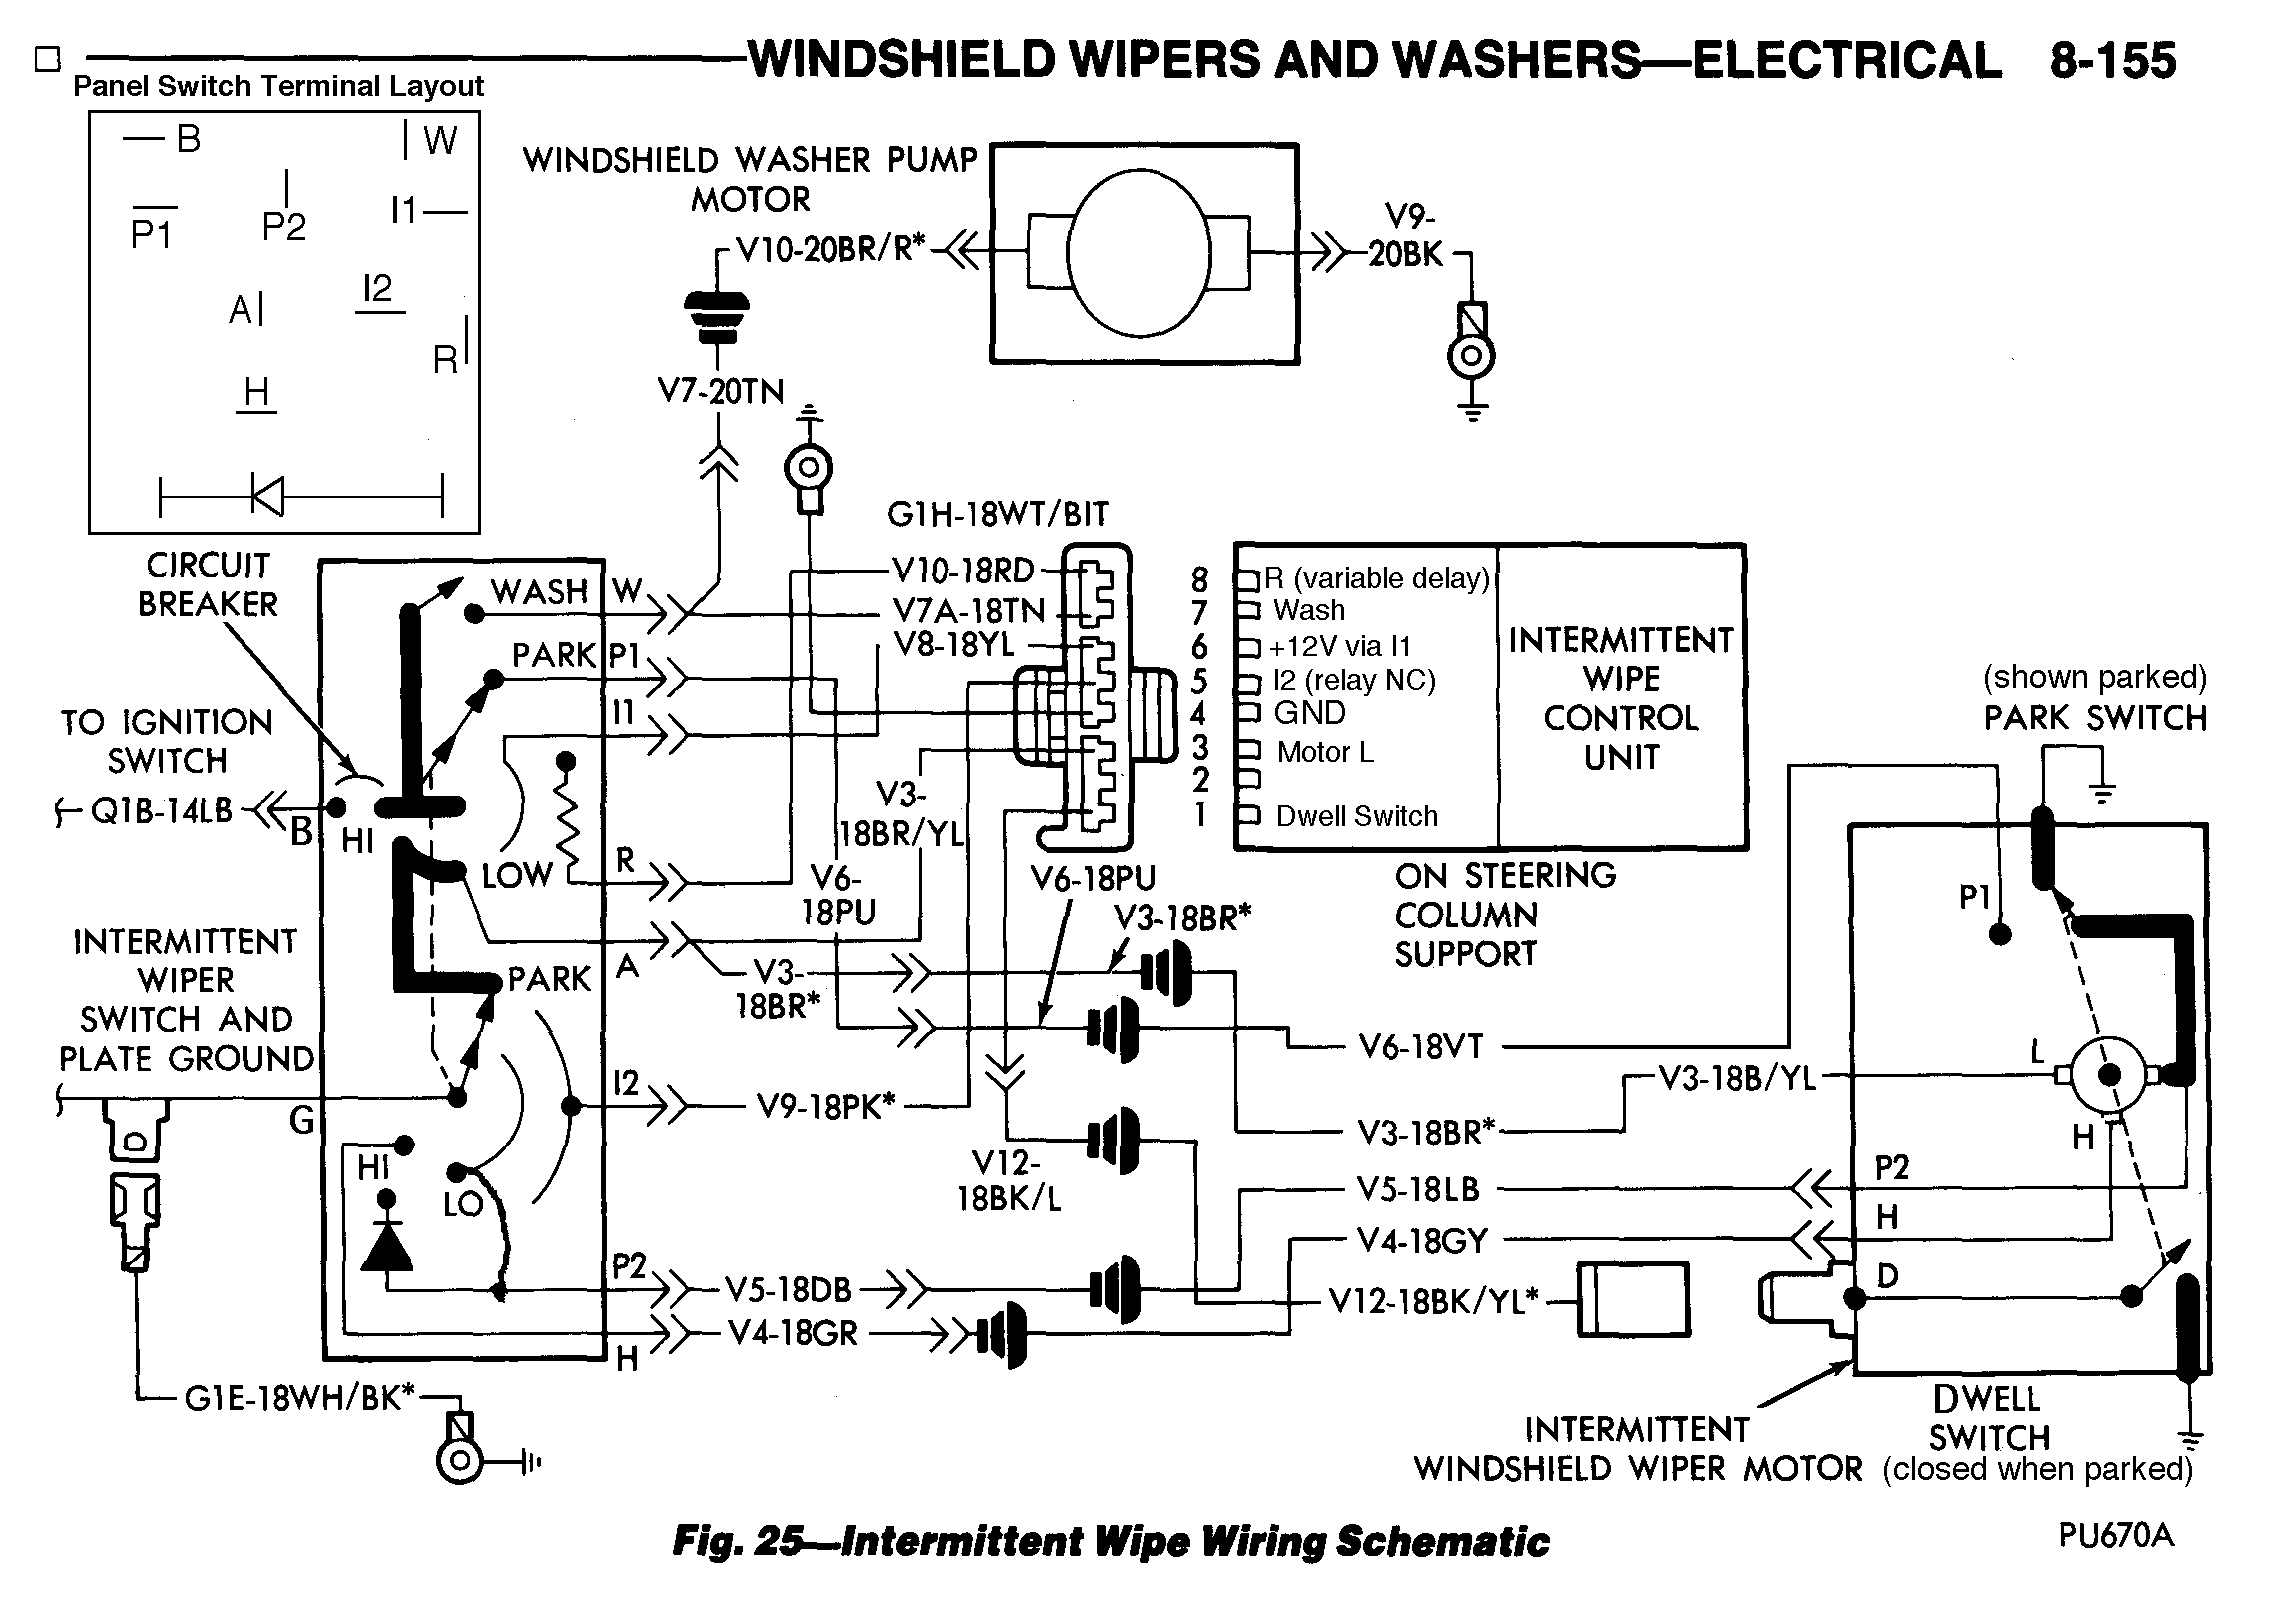 Mopar Wiper Switch Wiring Diagram Free For You Painless Wipers Chrysler Intermittent Delay Fix Chevy Motor